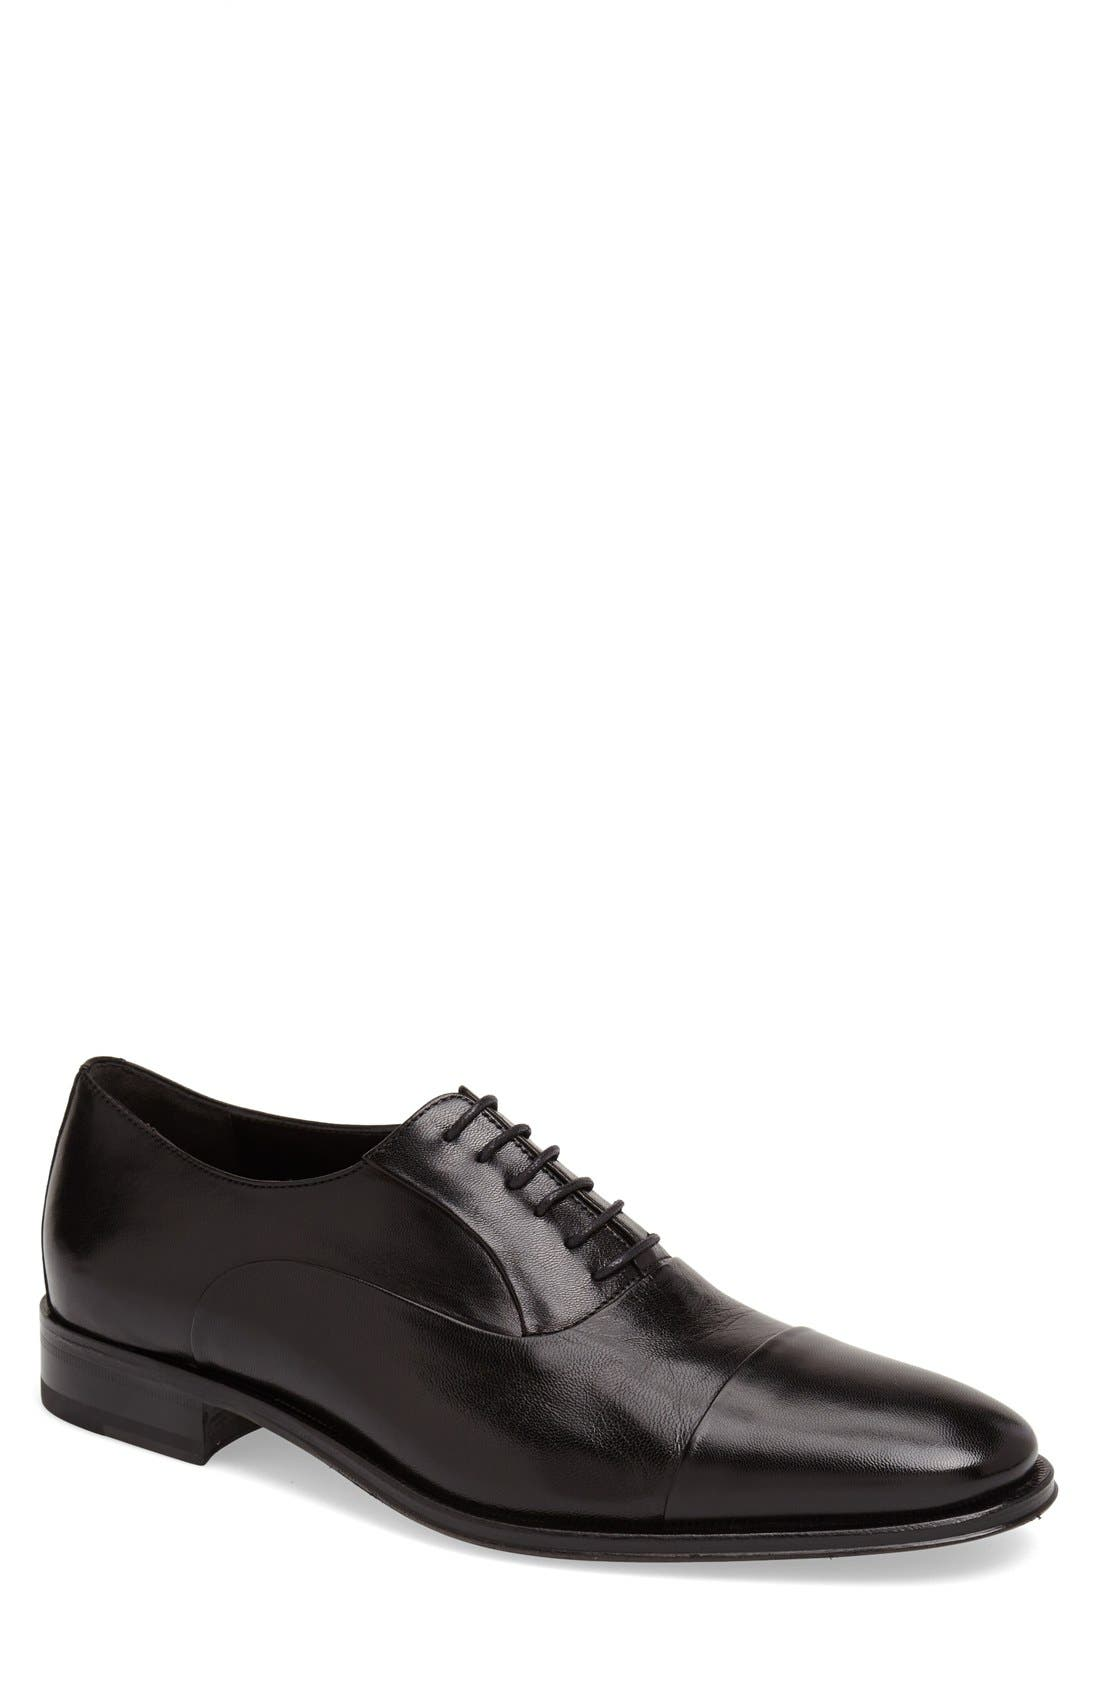 'Maioco' Oxford,                         Main,                         color, Black Calf